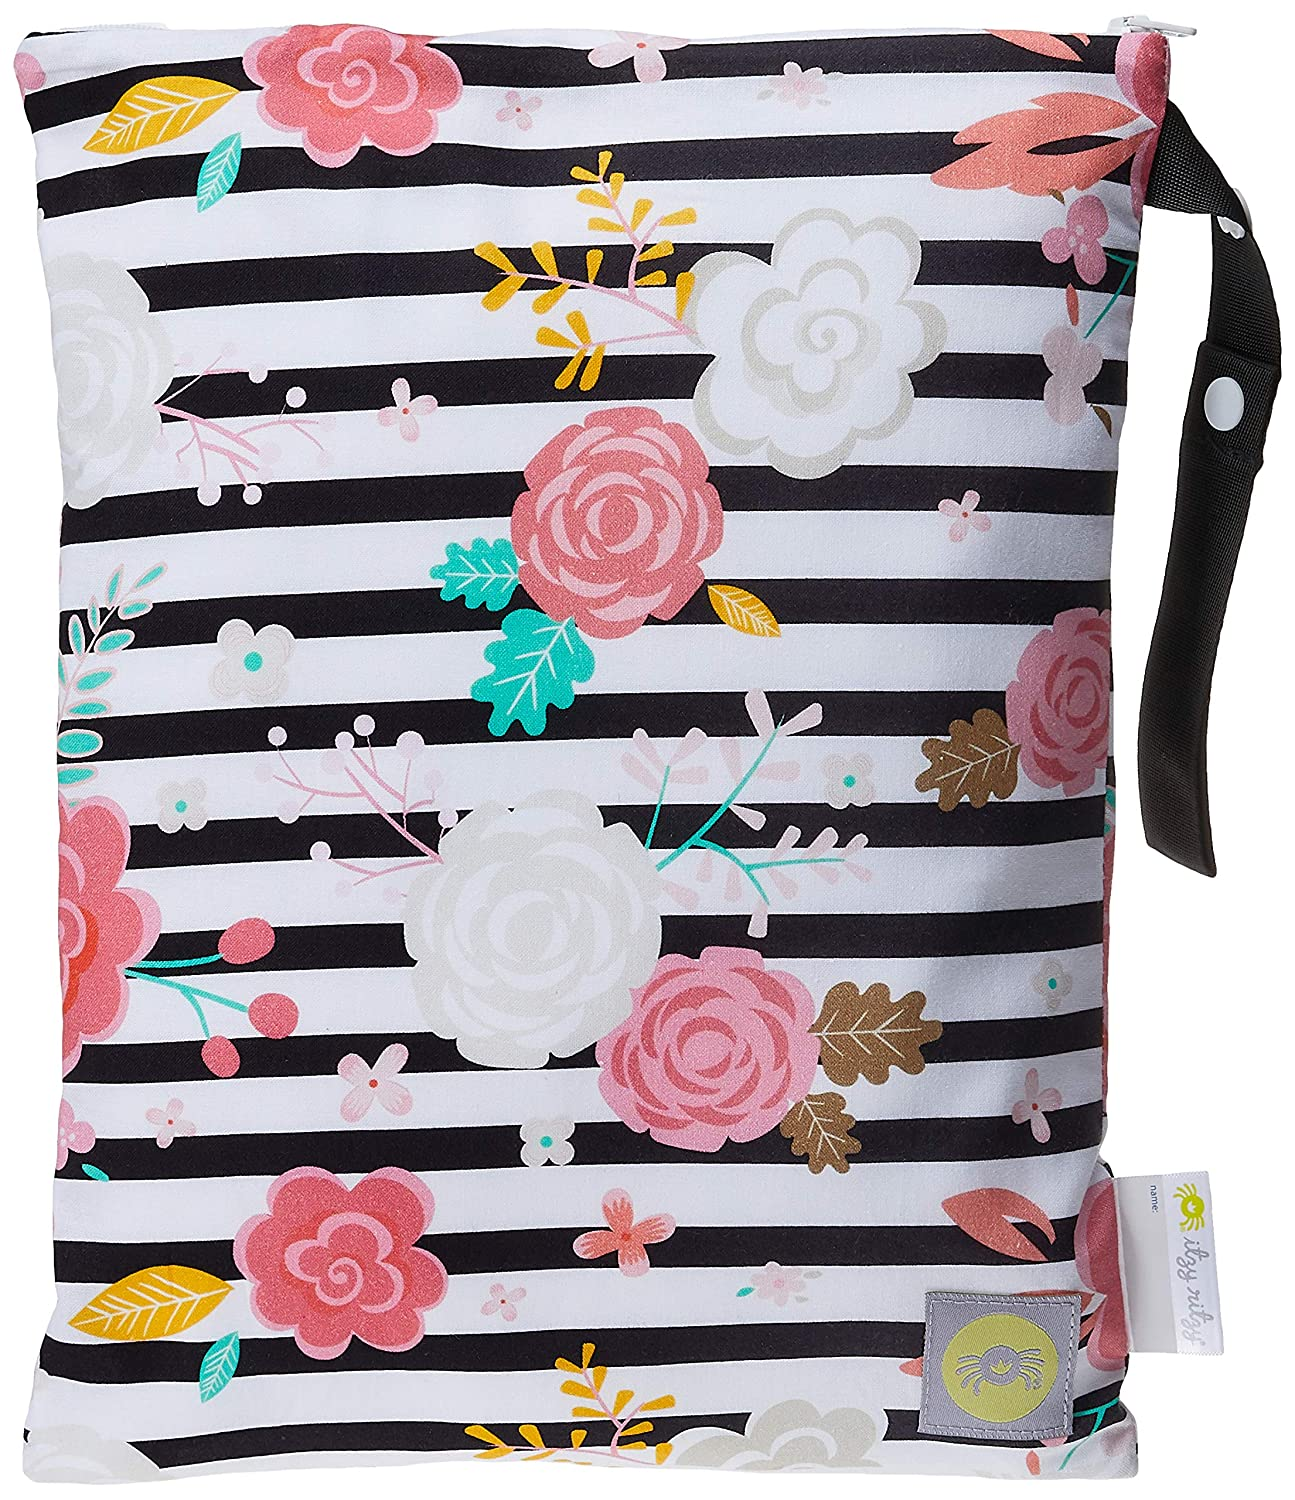 Itzy Ritzy Sealed Wet 5% OFF Bag Washable with Handle – Limited time trial price Adjustable